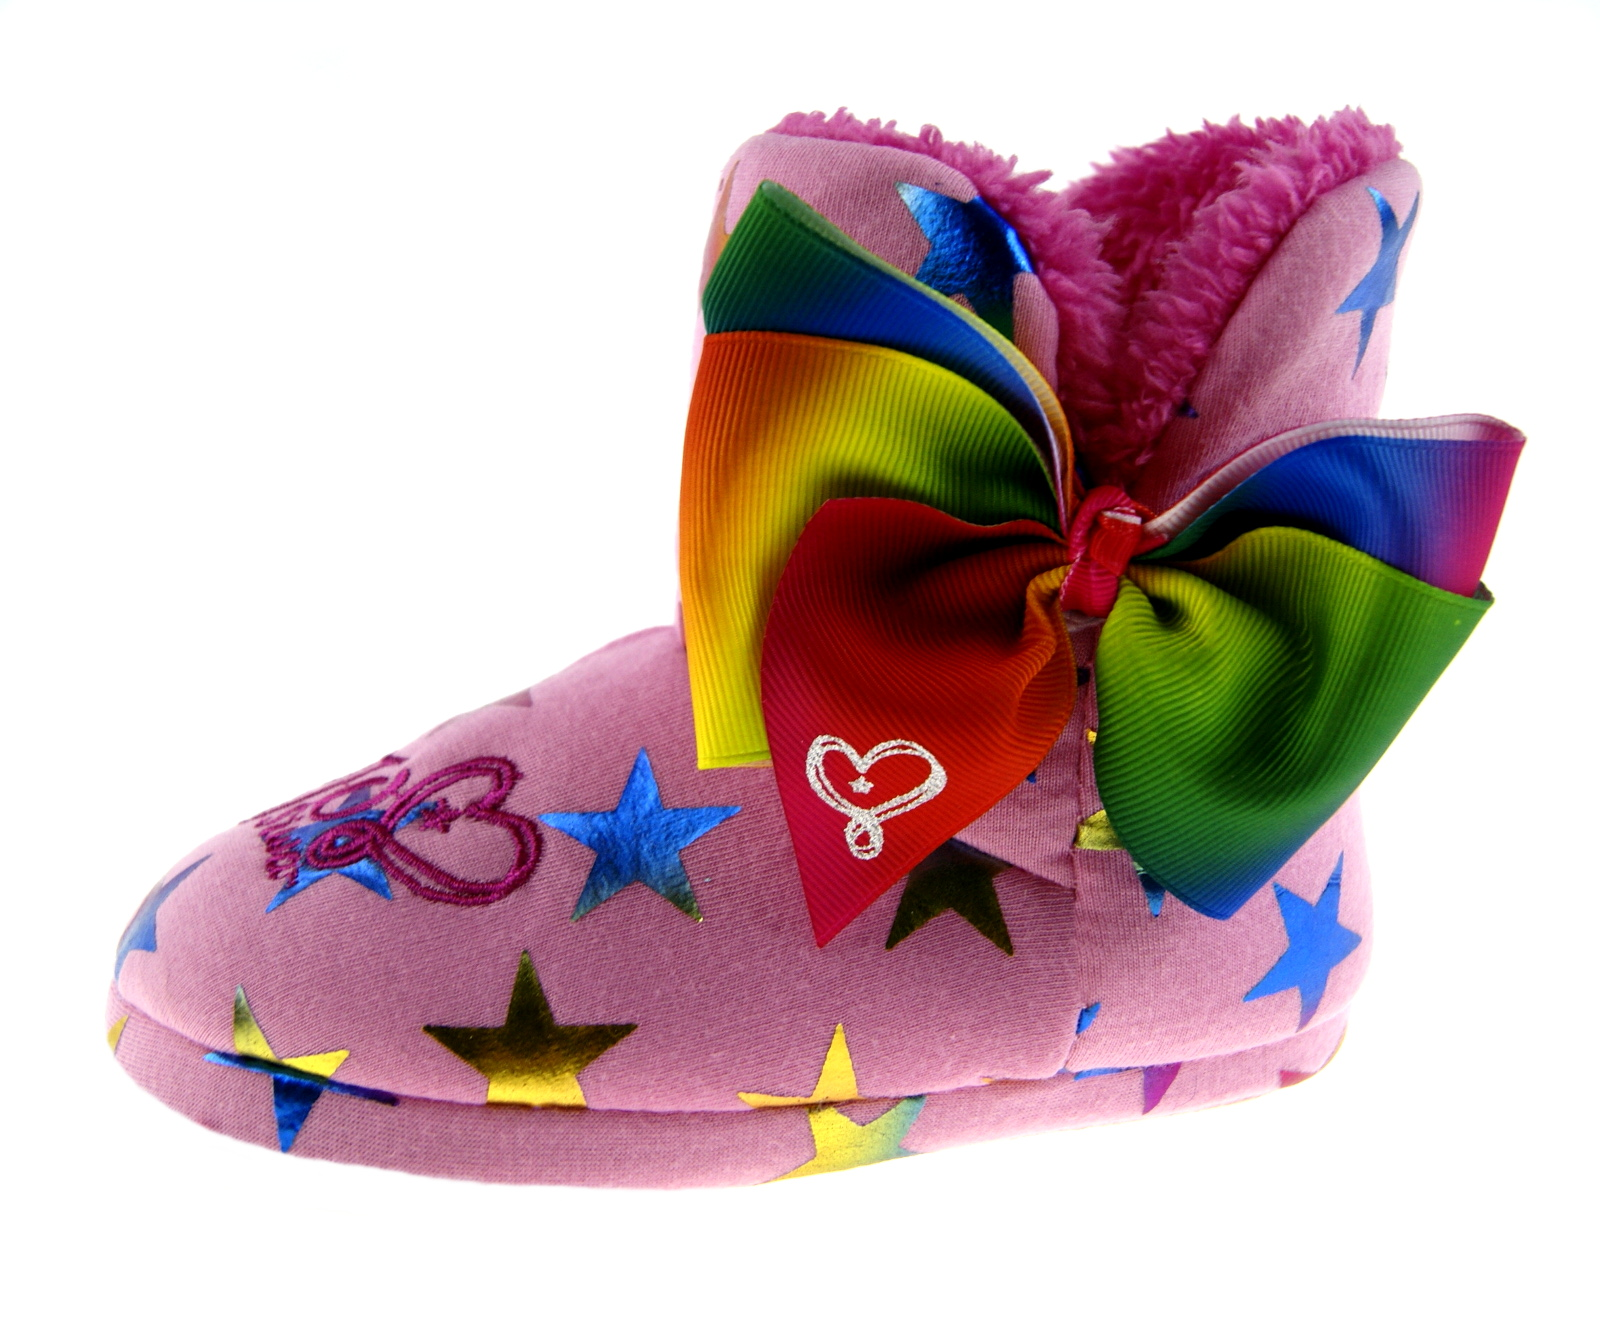 e1fe6a78cd95 Jojo Siwa Slippers Bow Ankle Booties Novelty Plush Cushioned Fleece Lined  Gift